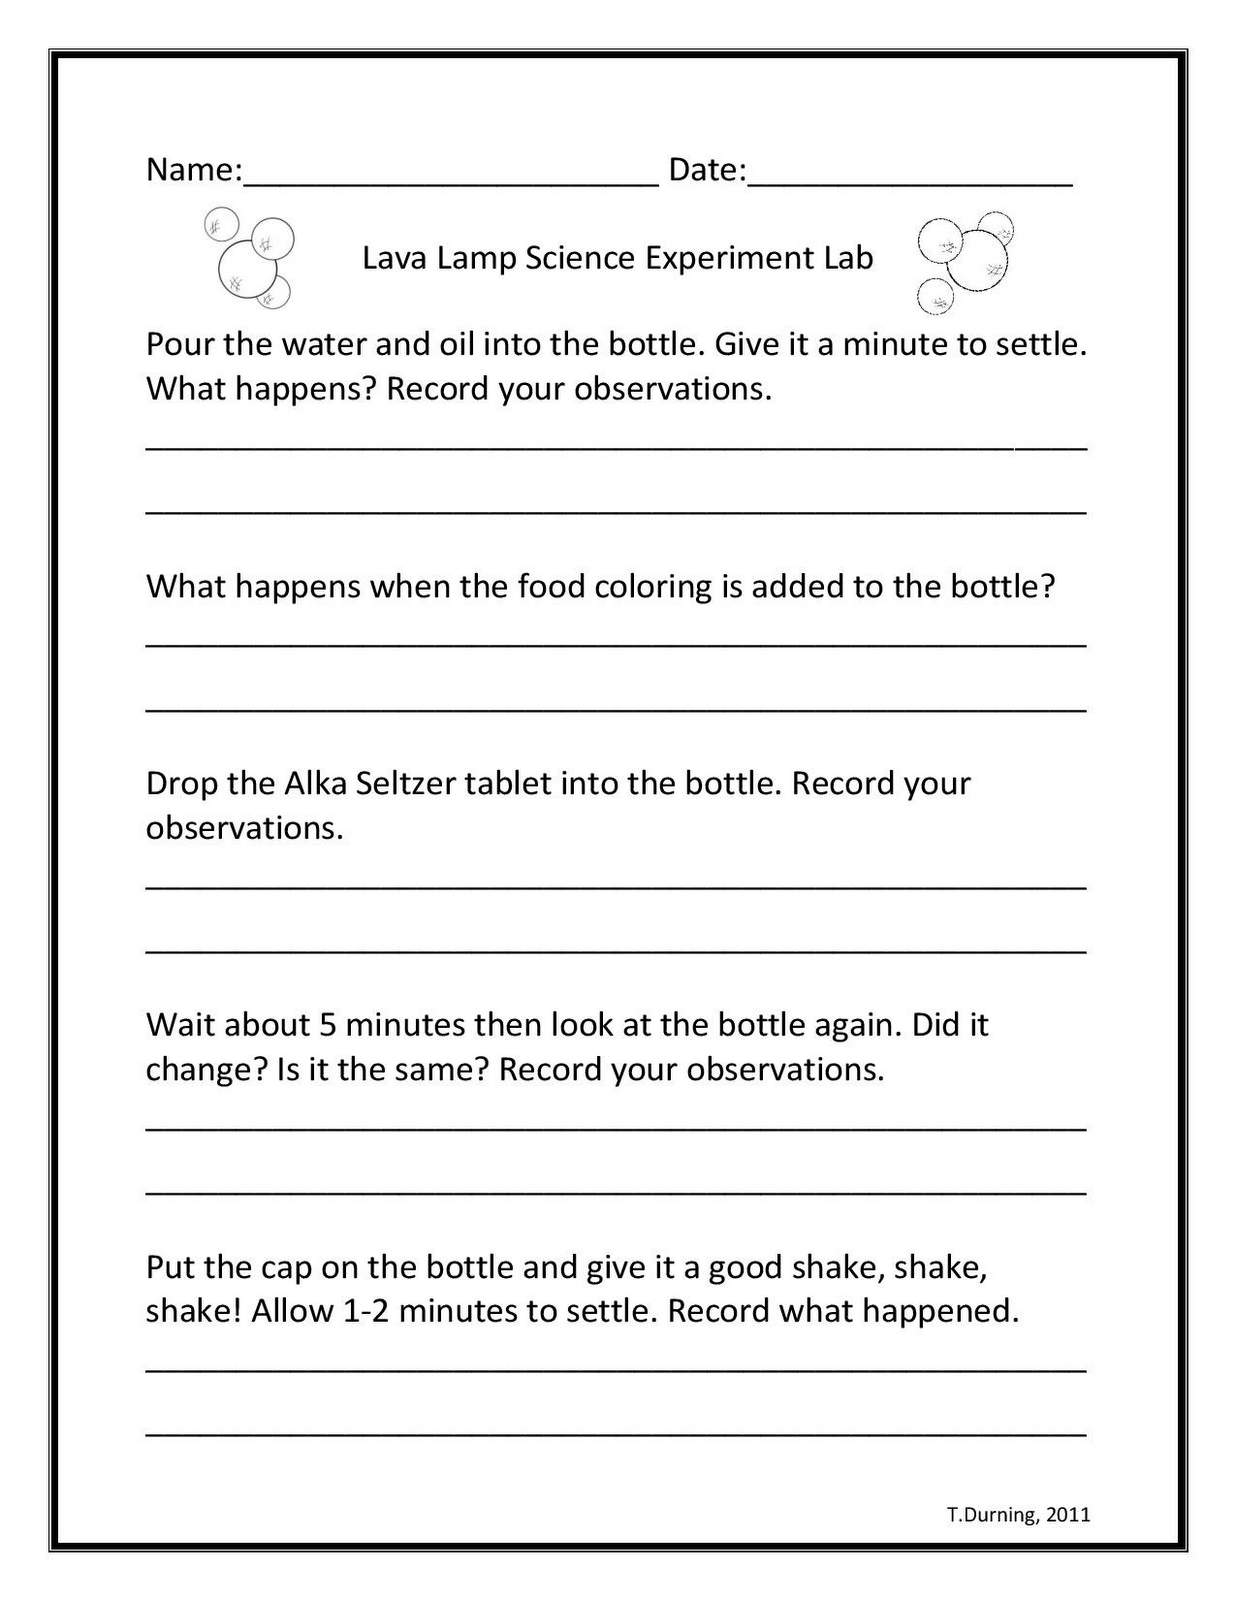 Lava Lamp Science Experiment   Science worksheets [ 1600 x 1236 Pixel ]